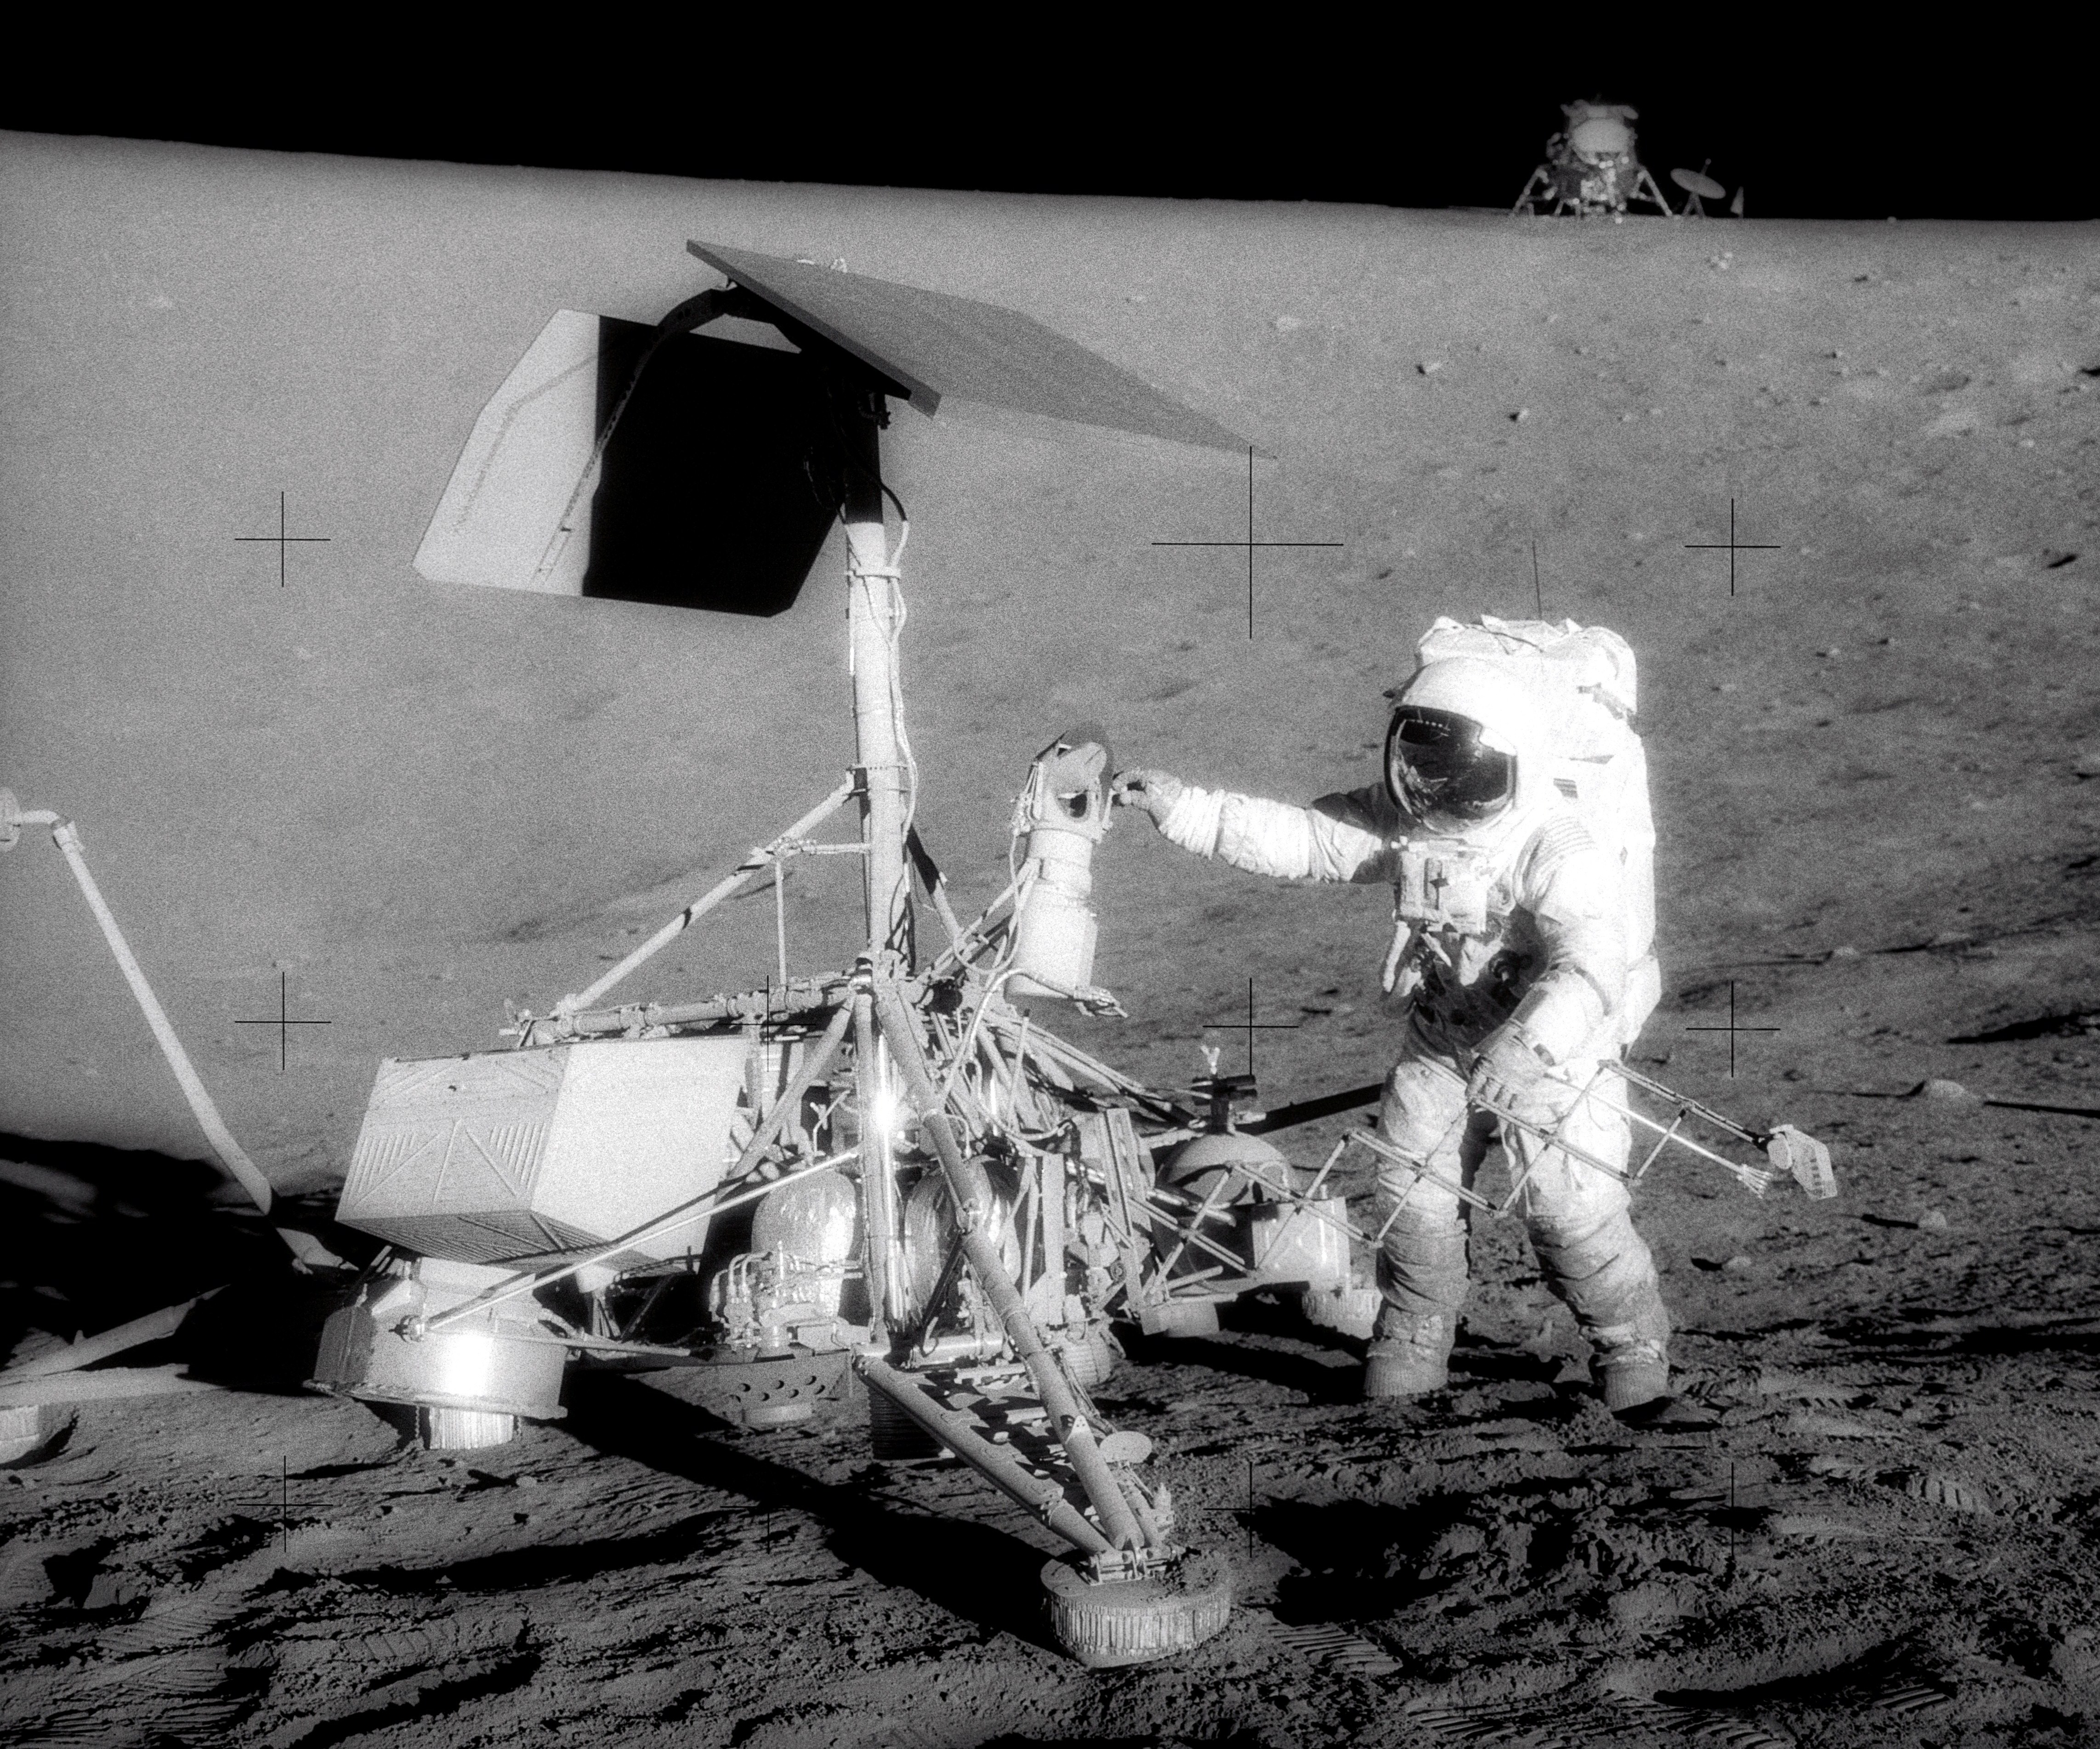 How many attempts were made to land on the moon in the 60s?